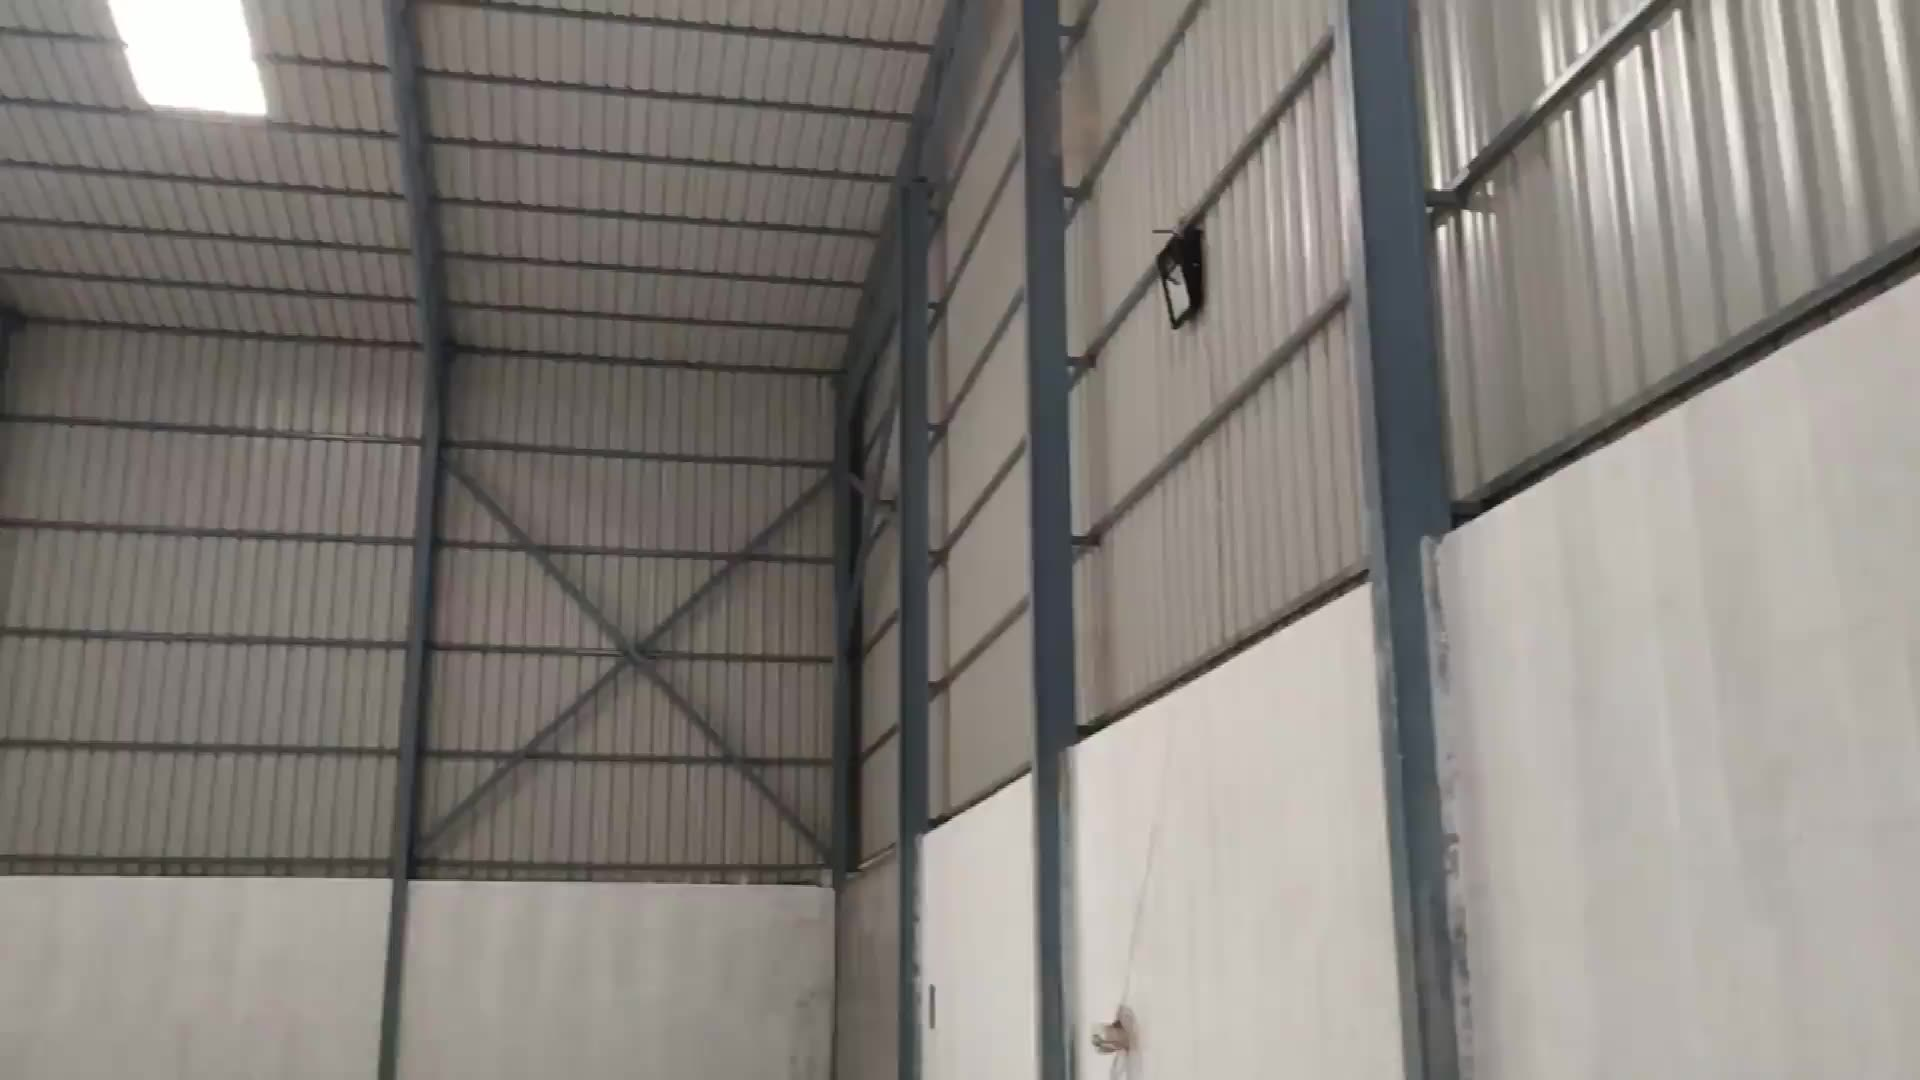 NX pre fab warehouse storehouse poultry warehouse philippines warehouse construction costs fabric